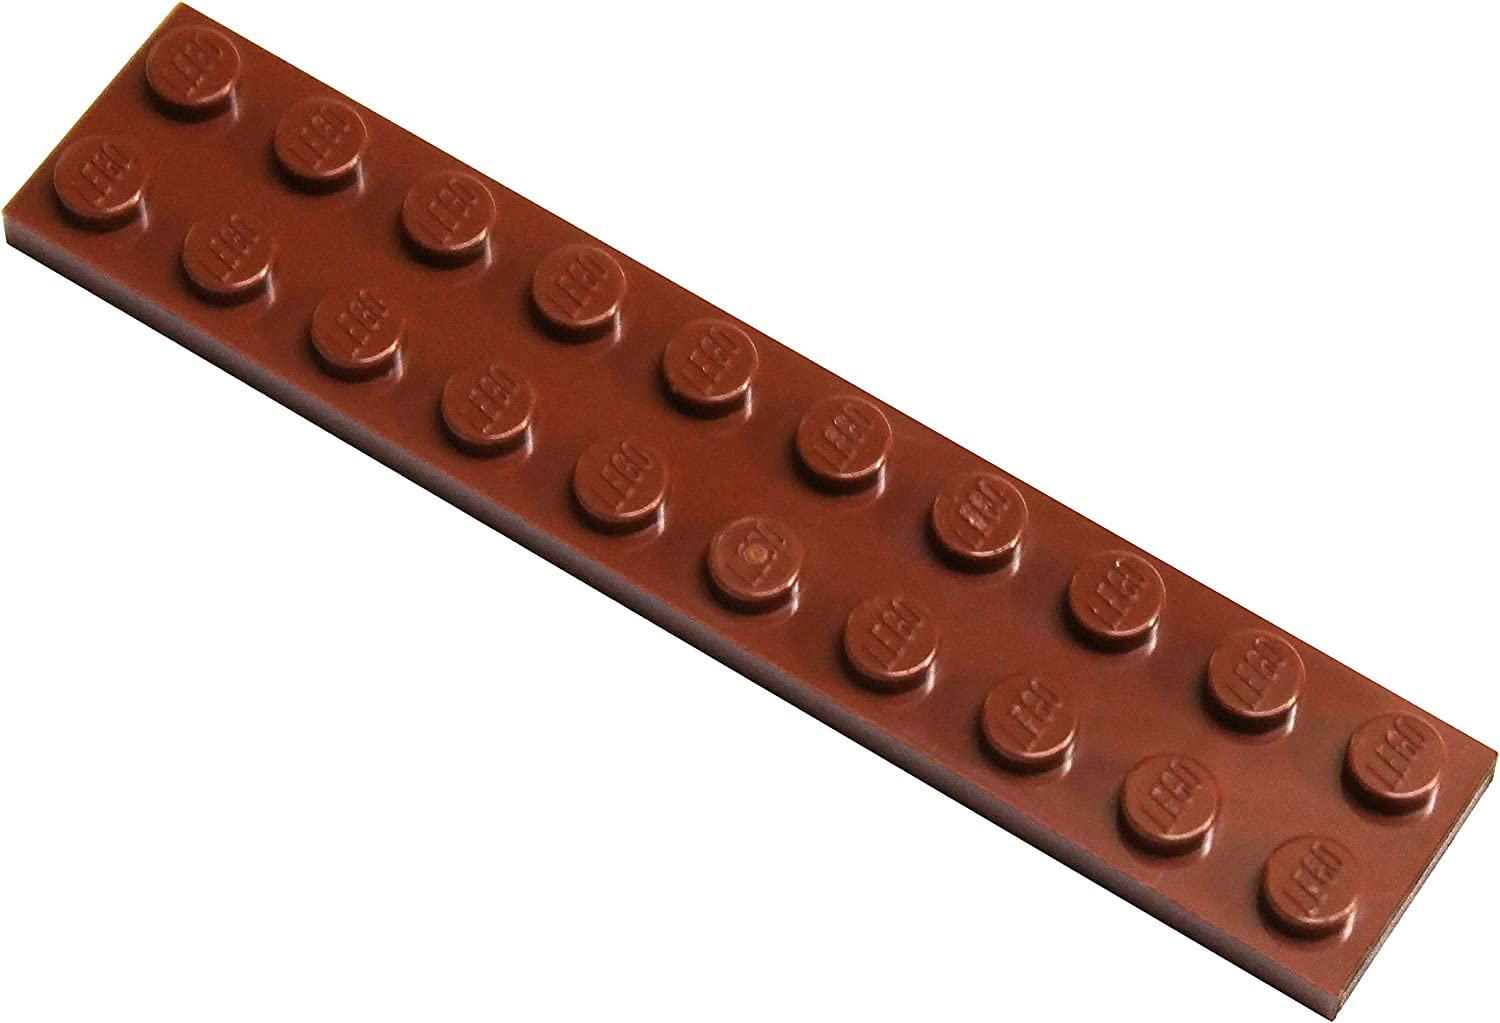 LEGO Parts and Pieces: Reddish Brown 2x10 Plate x20